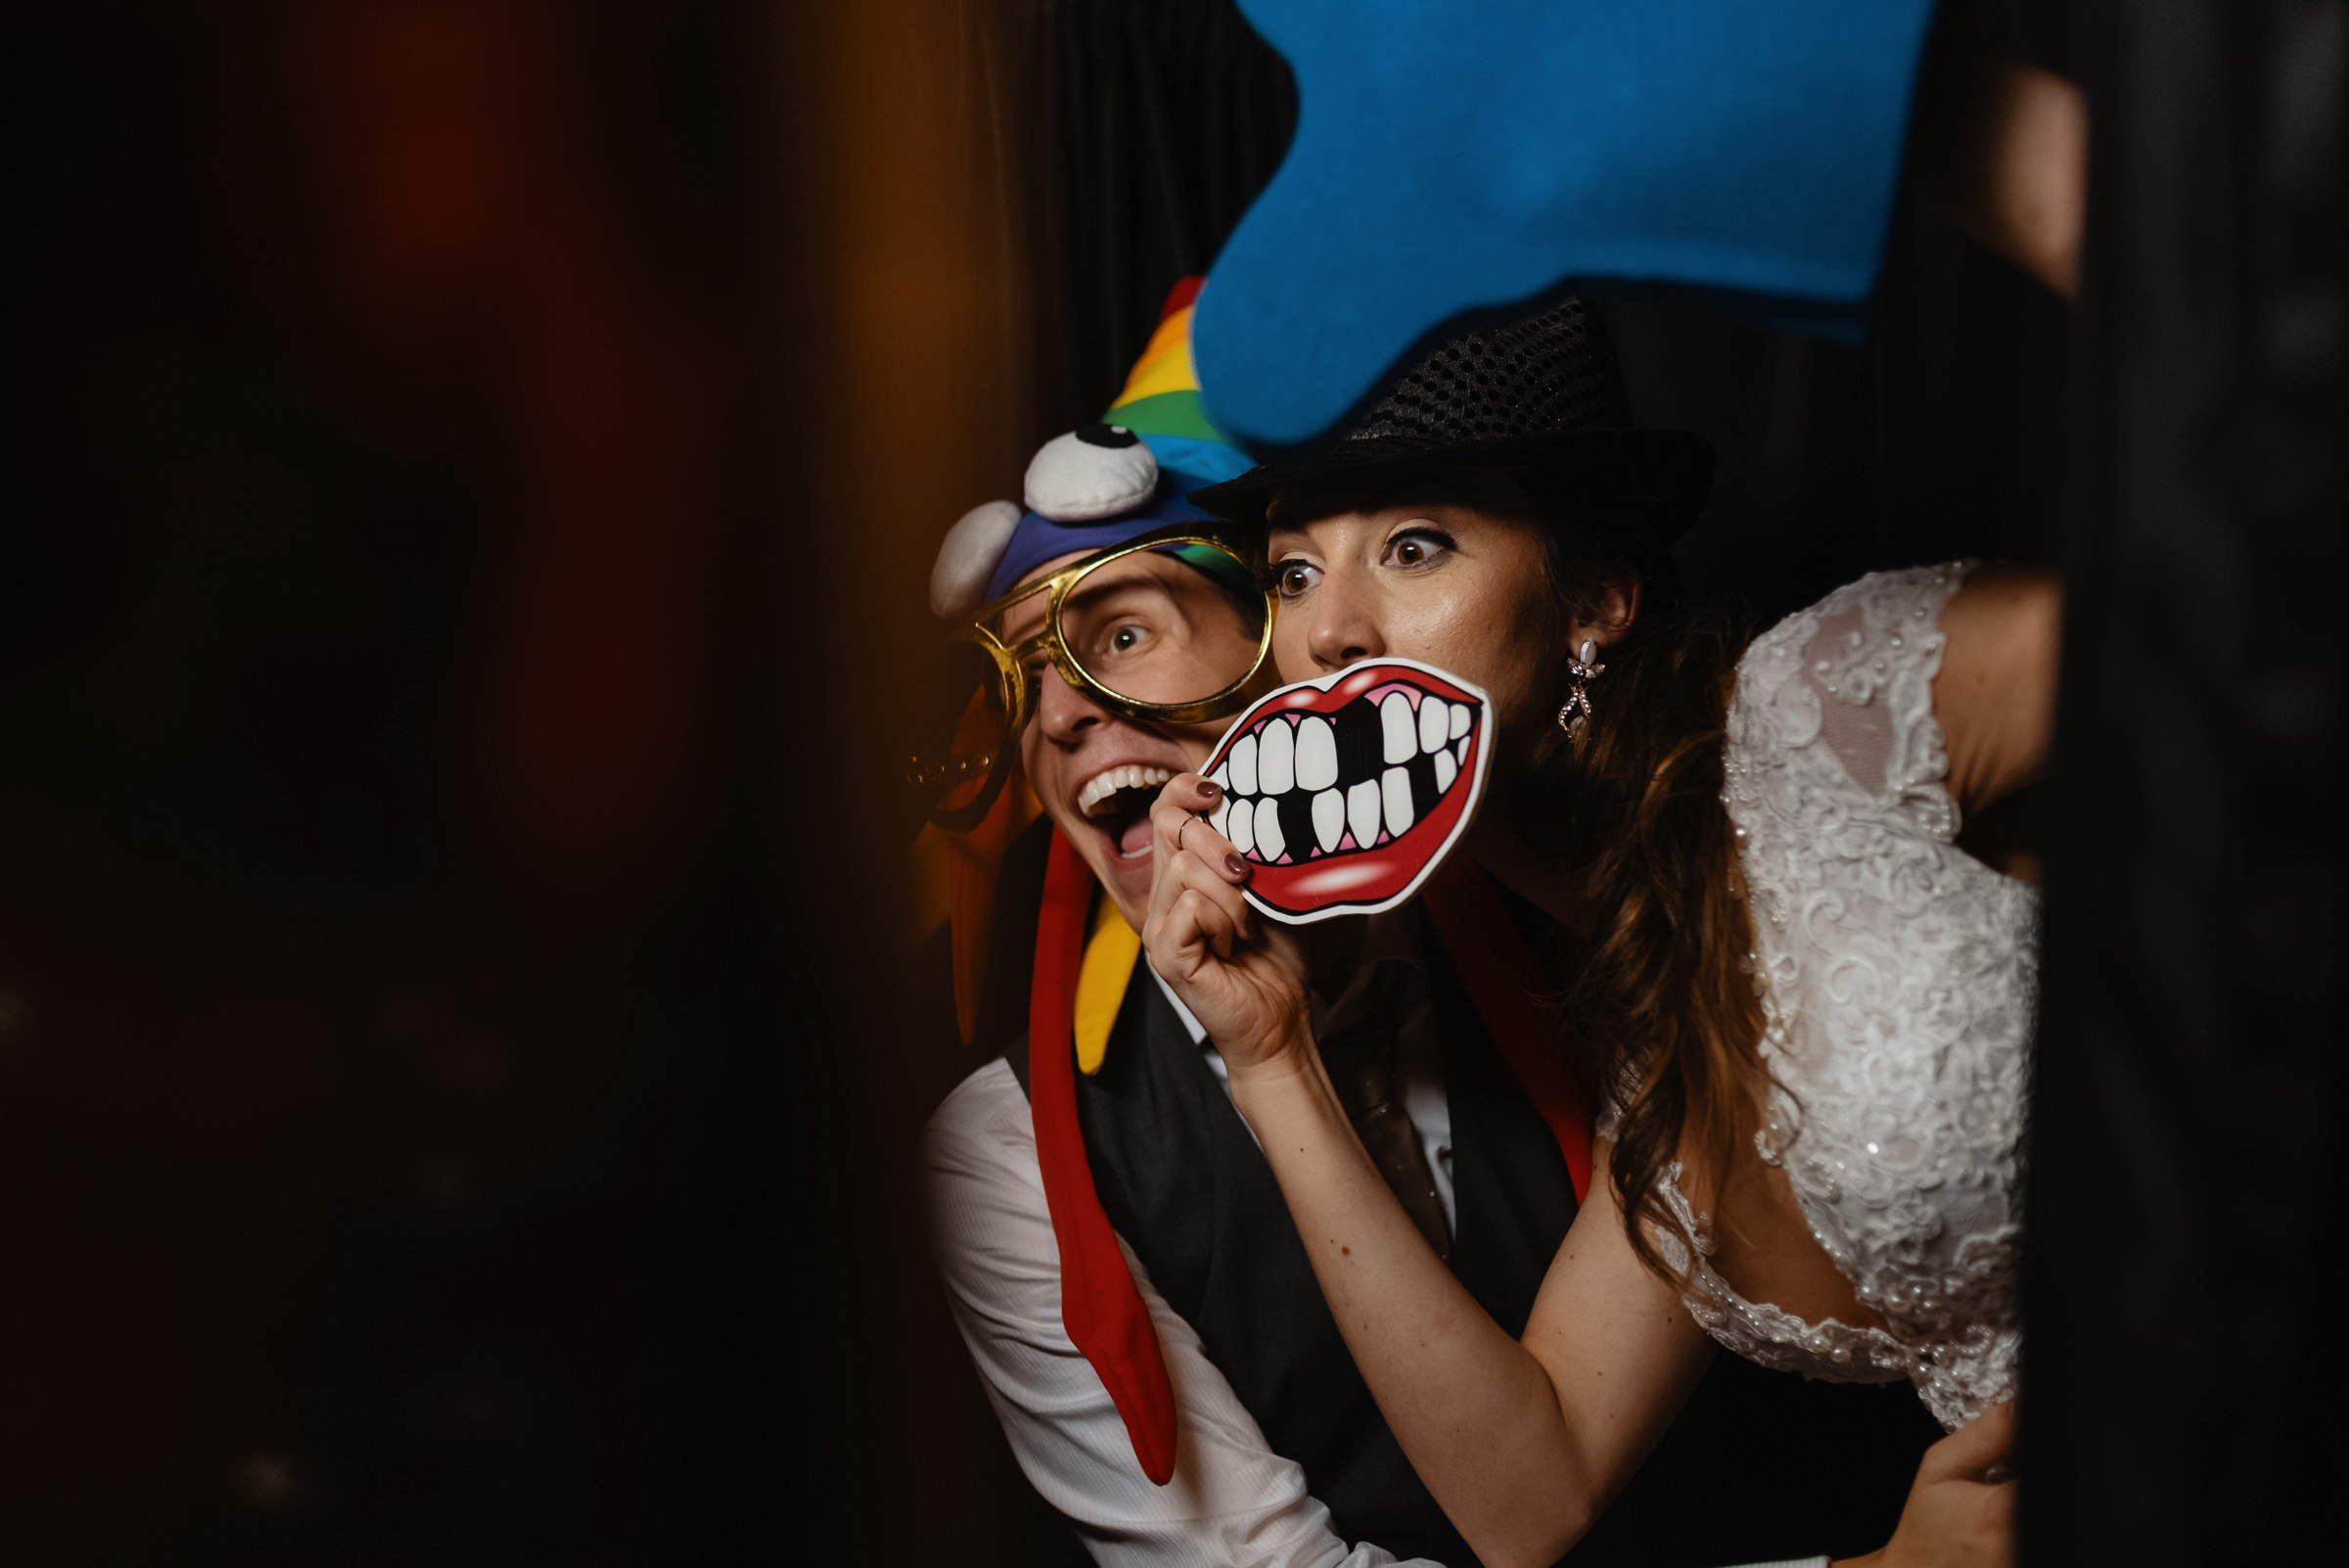 bride and groom having fun in the photobooth-new orleans-austin-houston- photo by Dark Roux